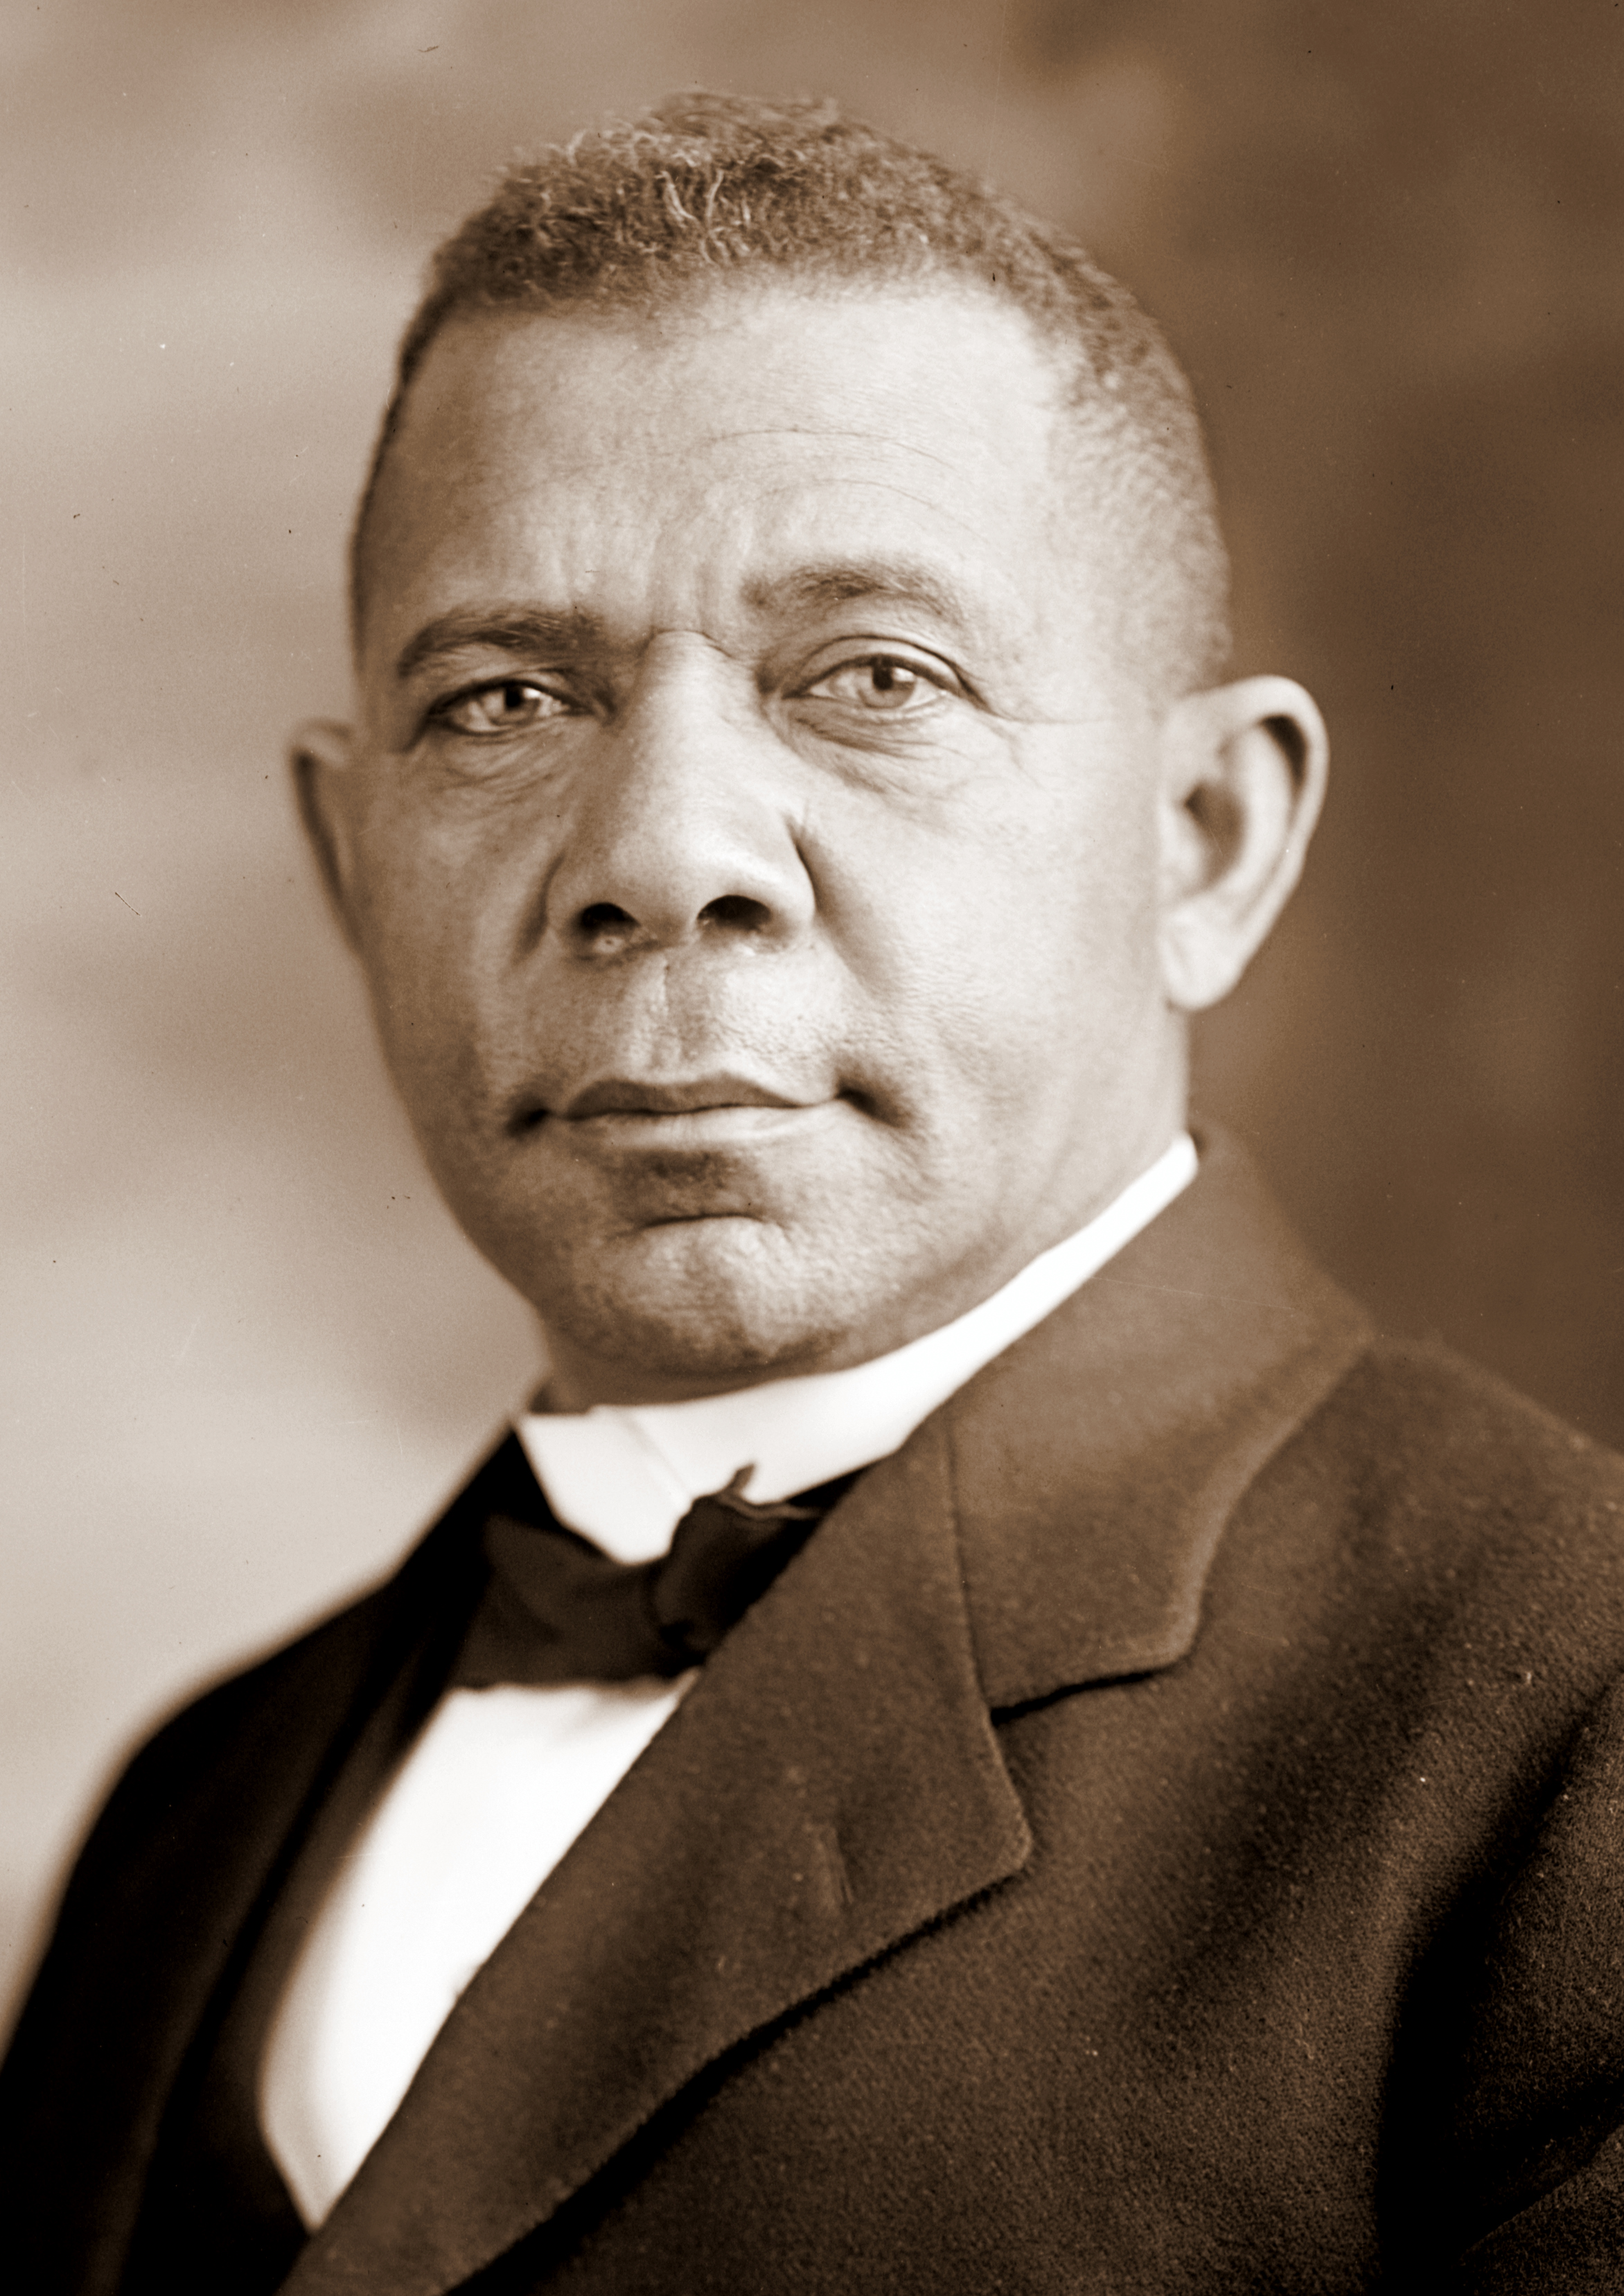 The First African American Invited To Dinner At The White House on oscar e brown inventor